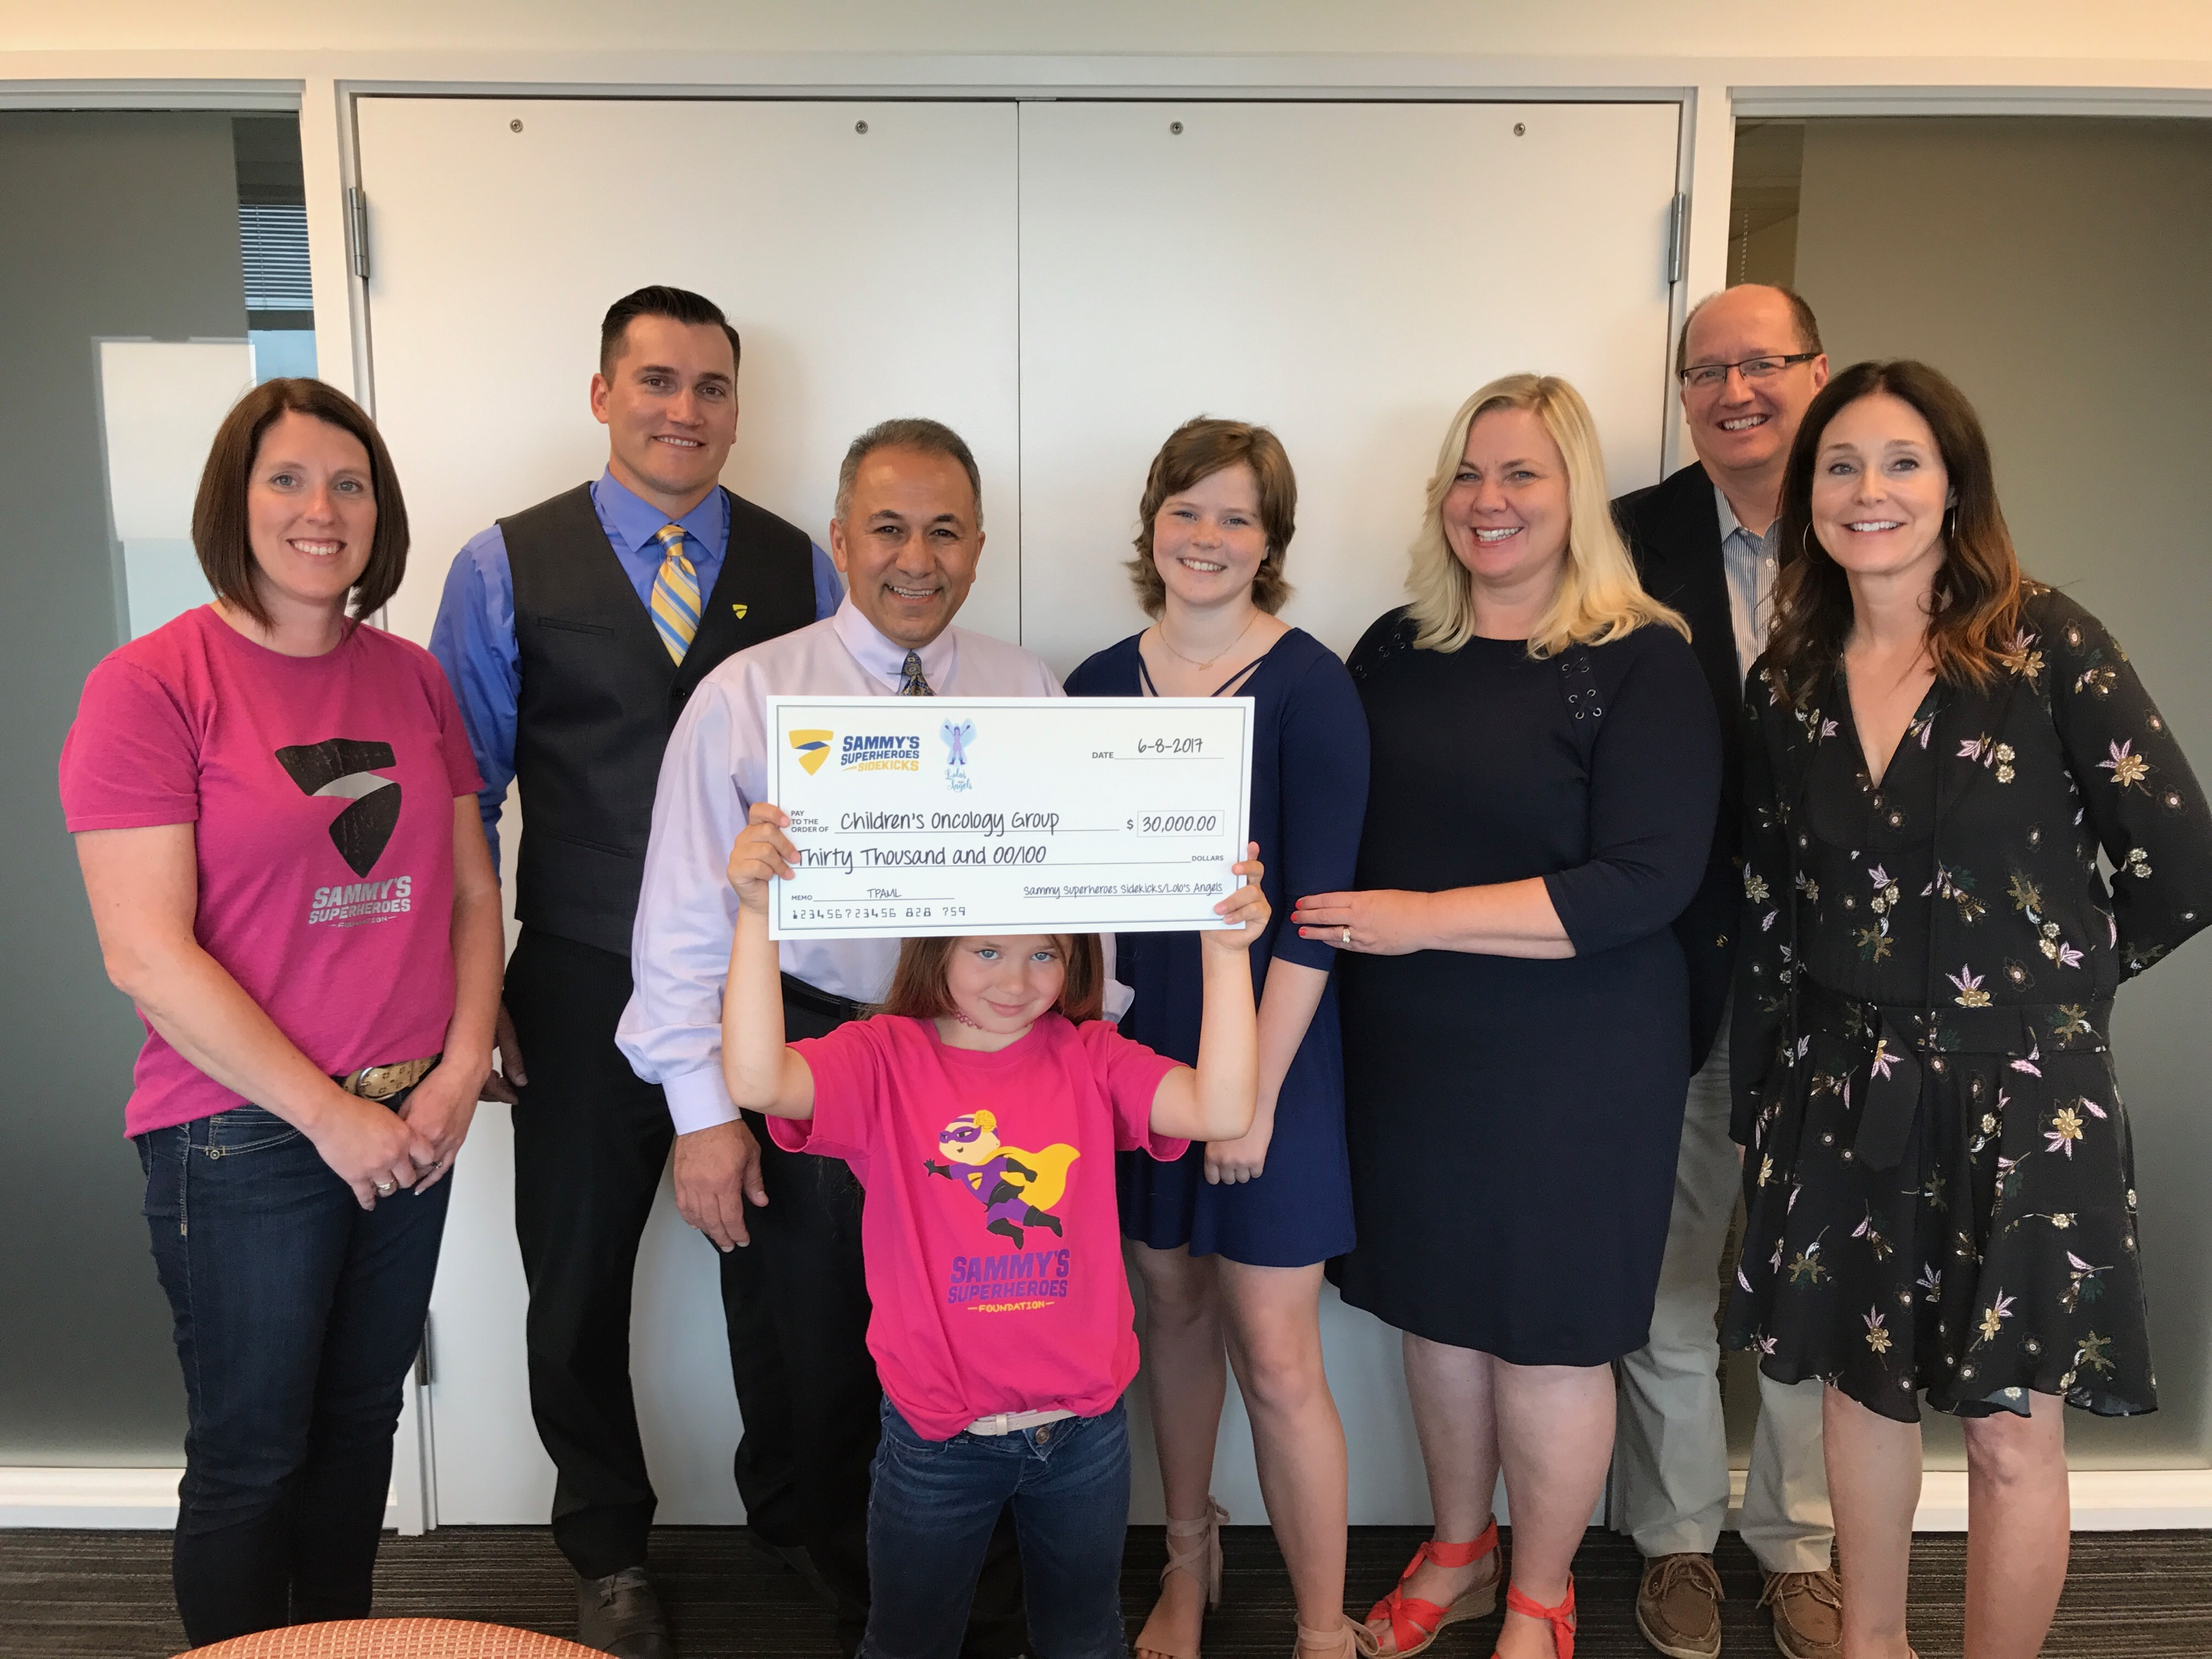 $30,000 Donated to Children's Oncology Group's AML Project